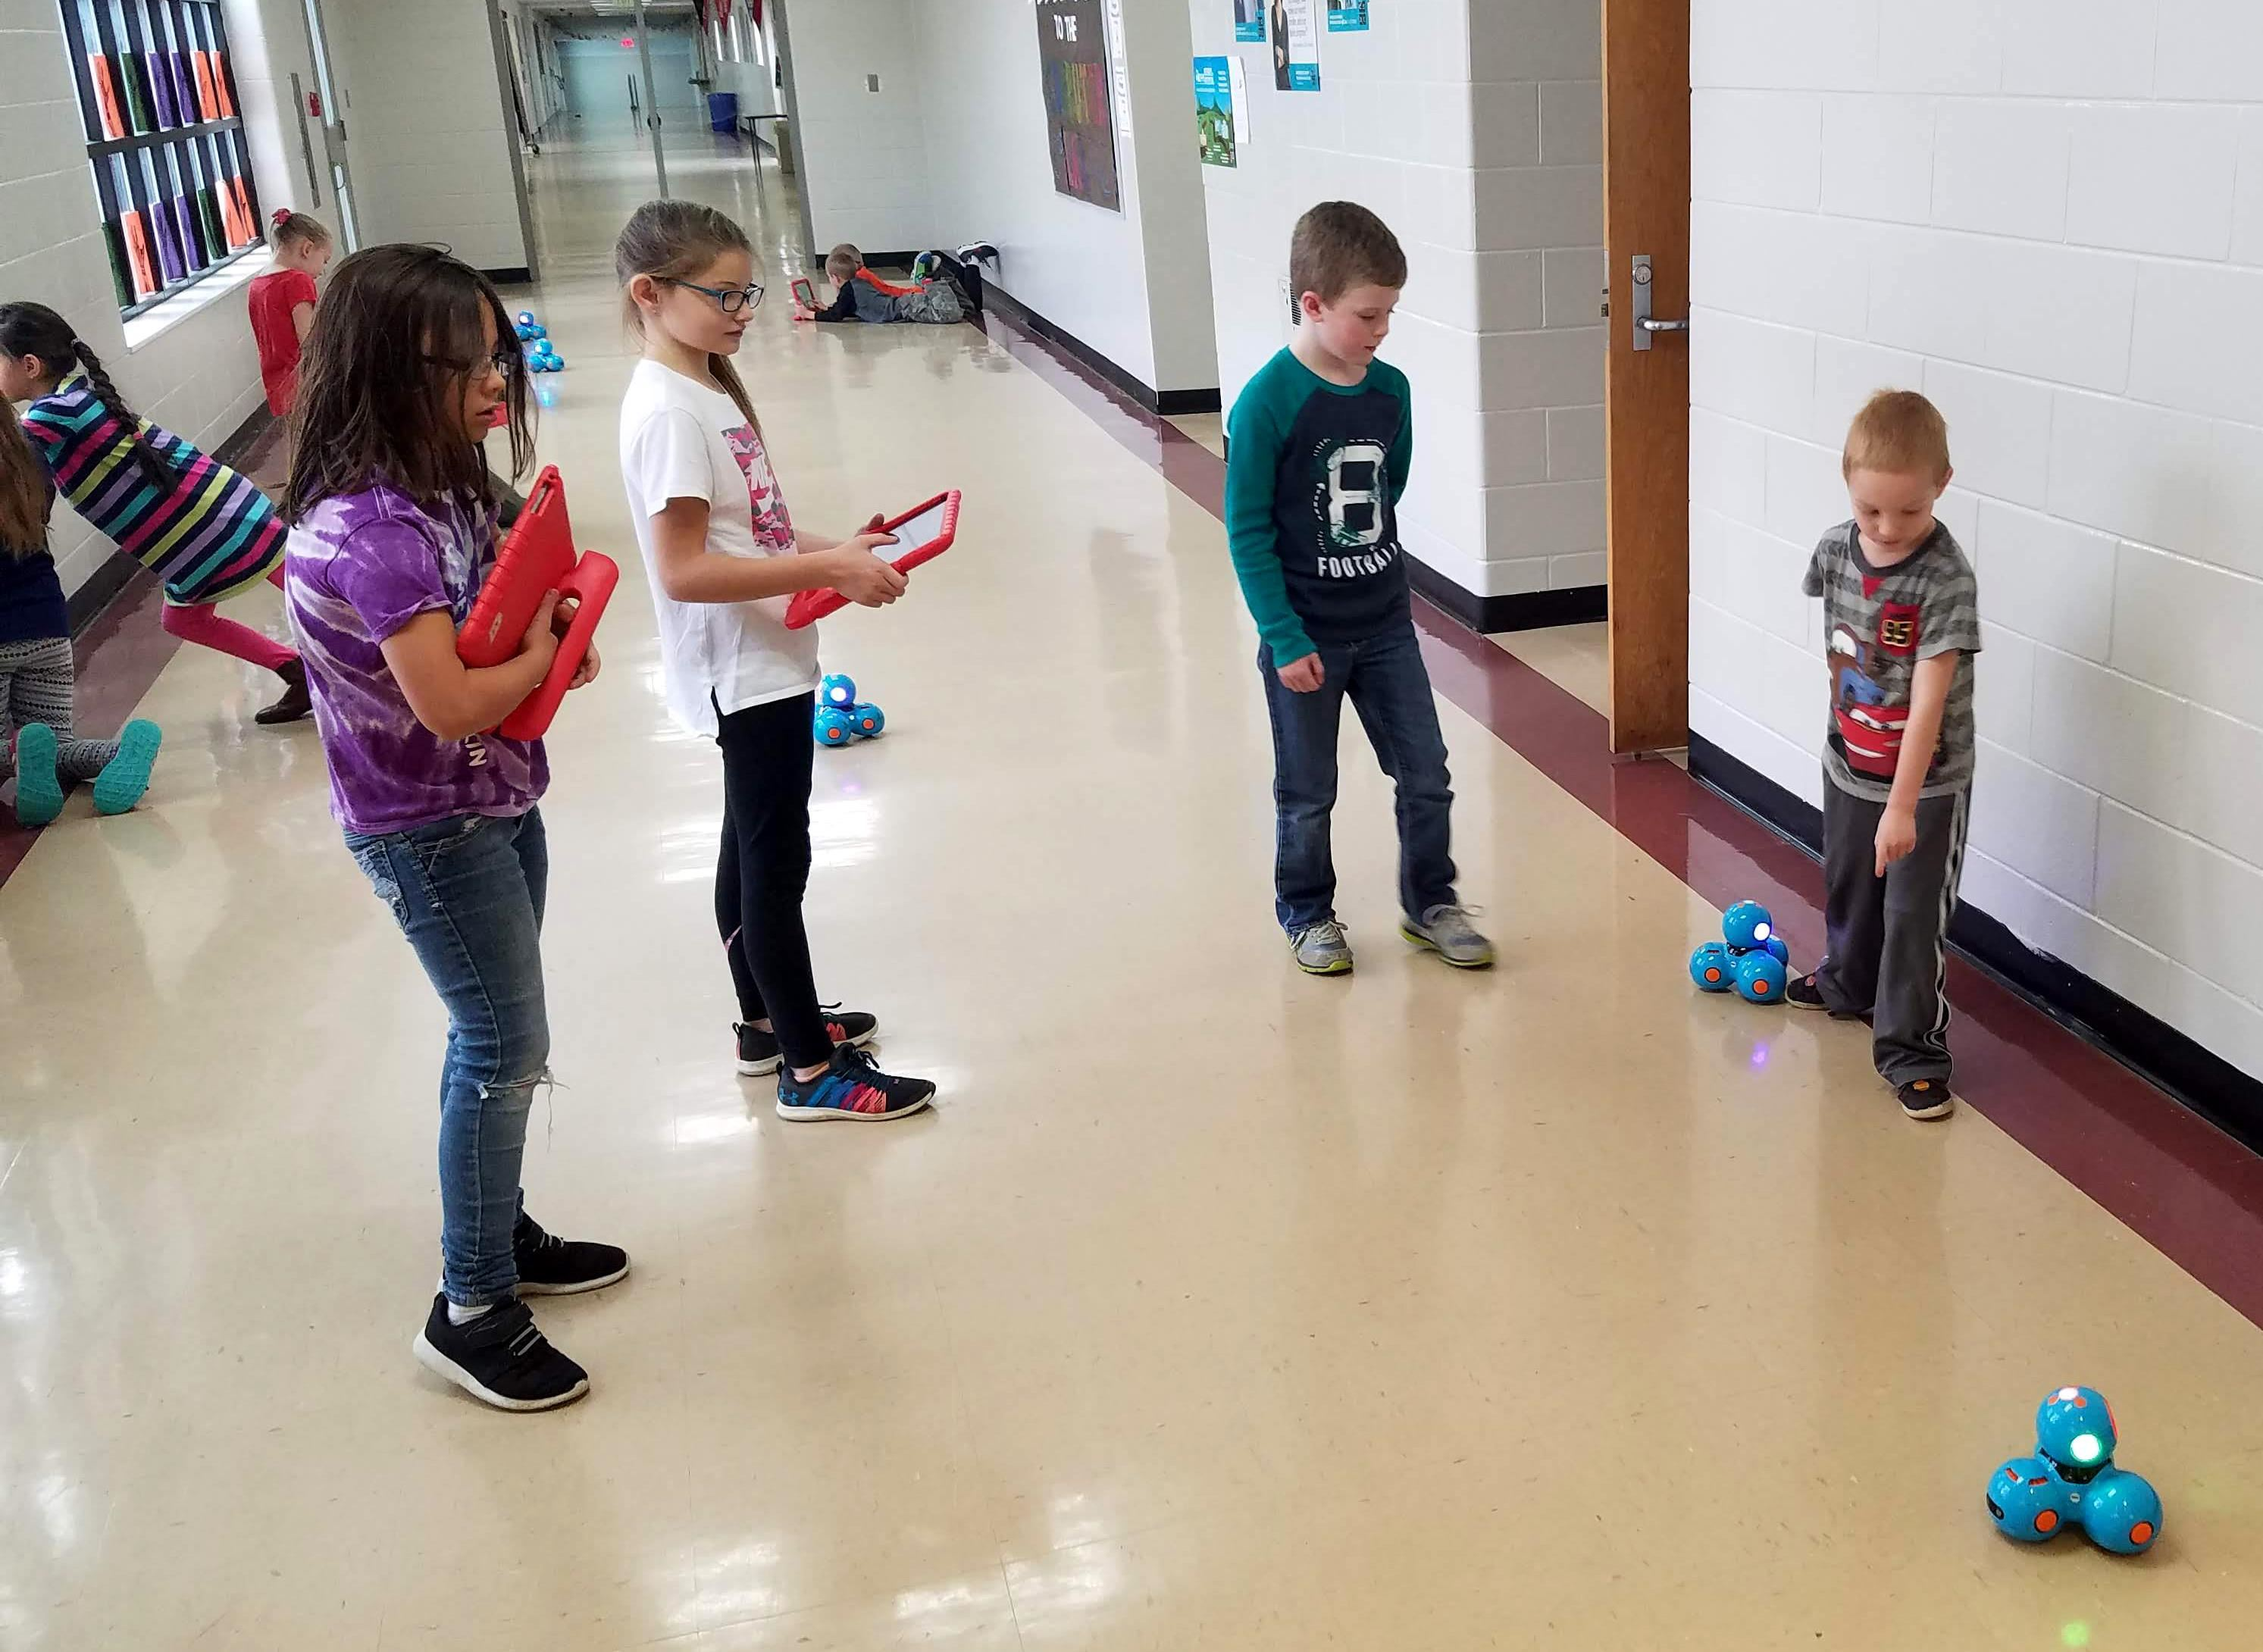 4 elementary students in school hall with small robots.